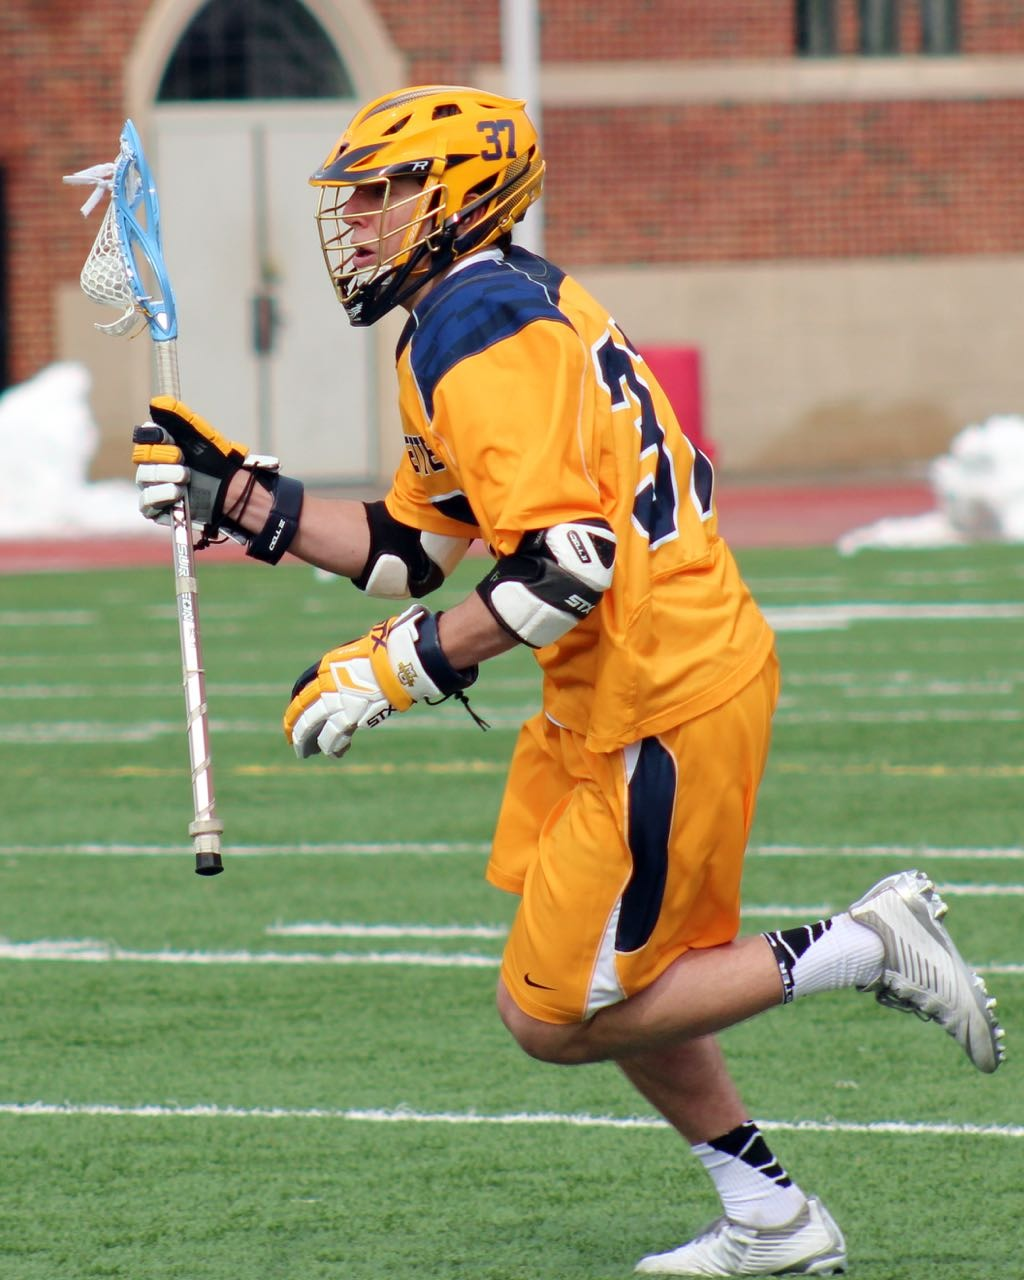 Colin Riehl will continue to play a big role in MU's SSDM group as a sophomore.